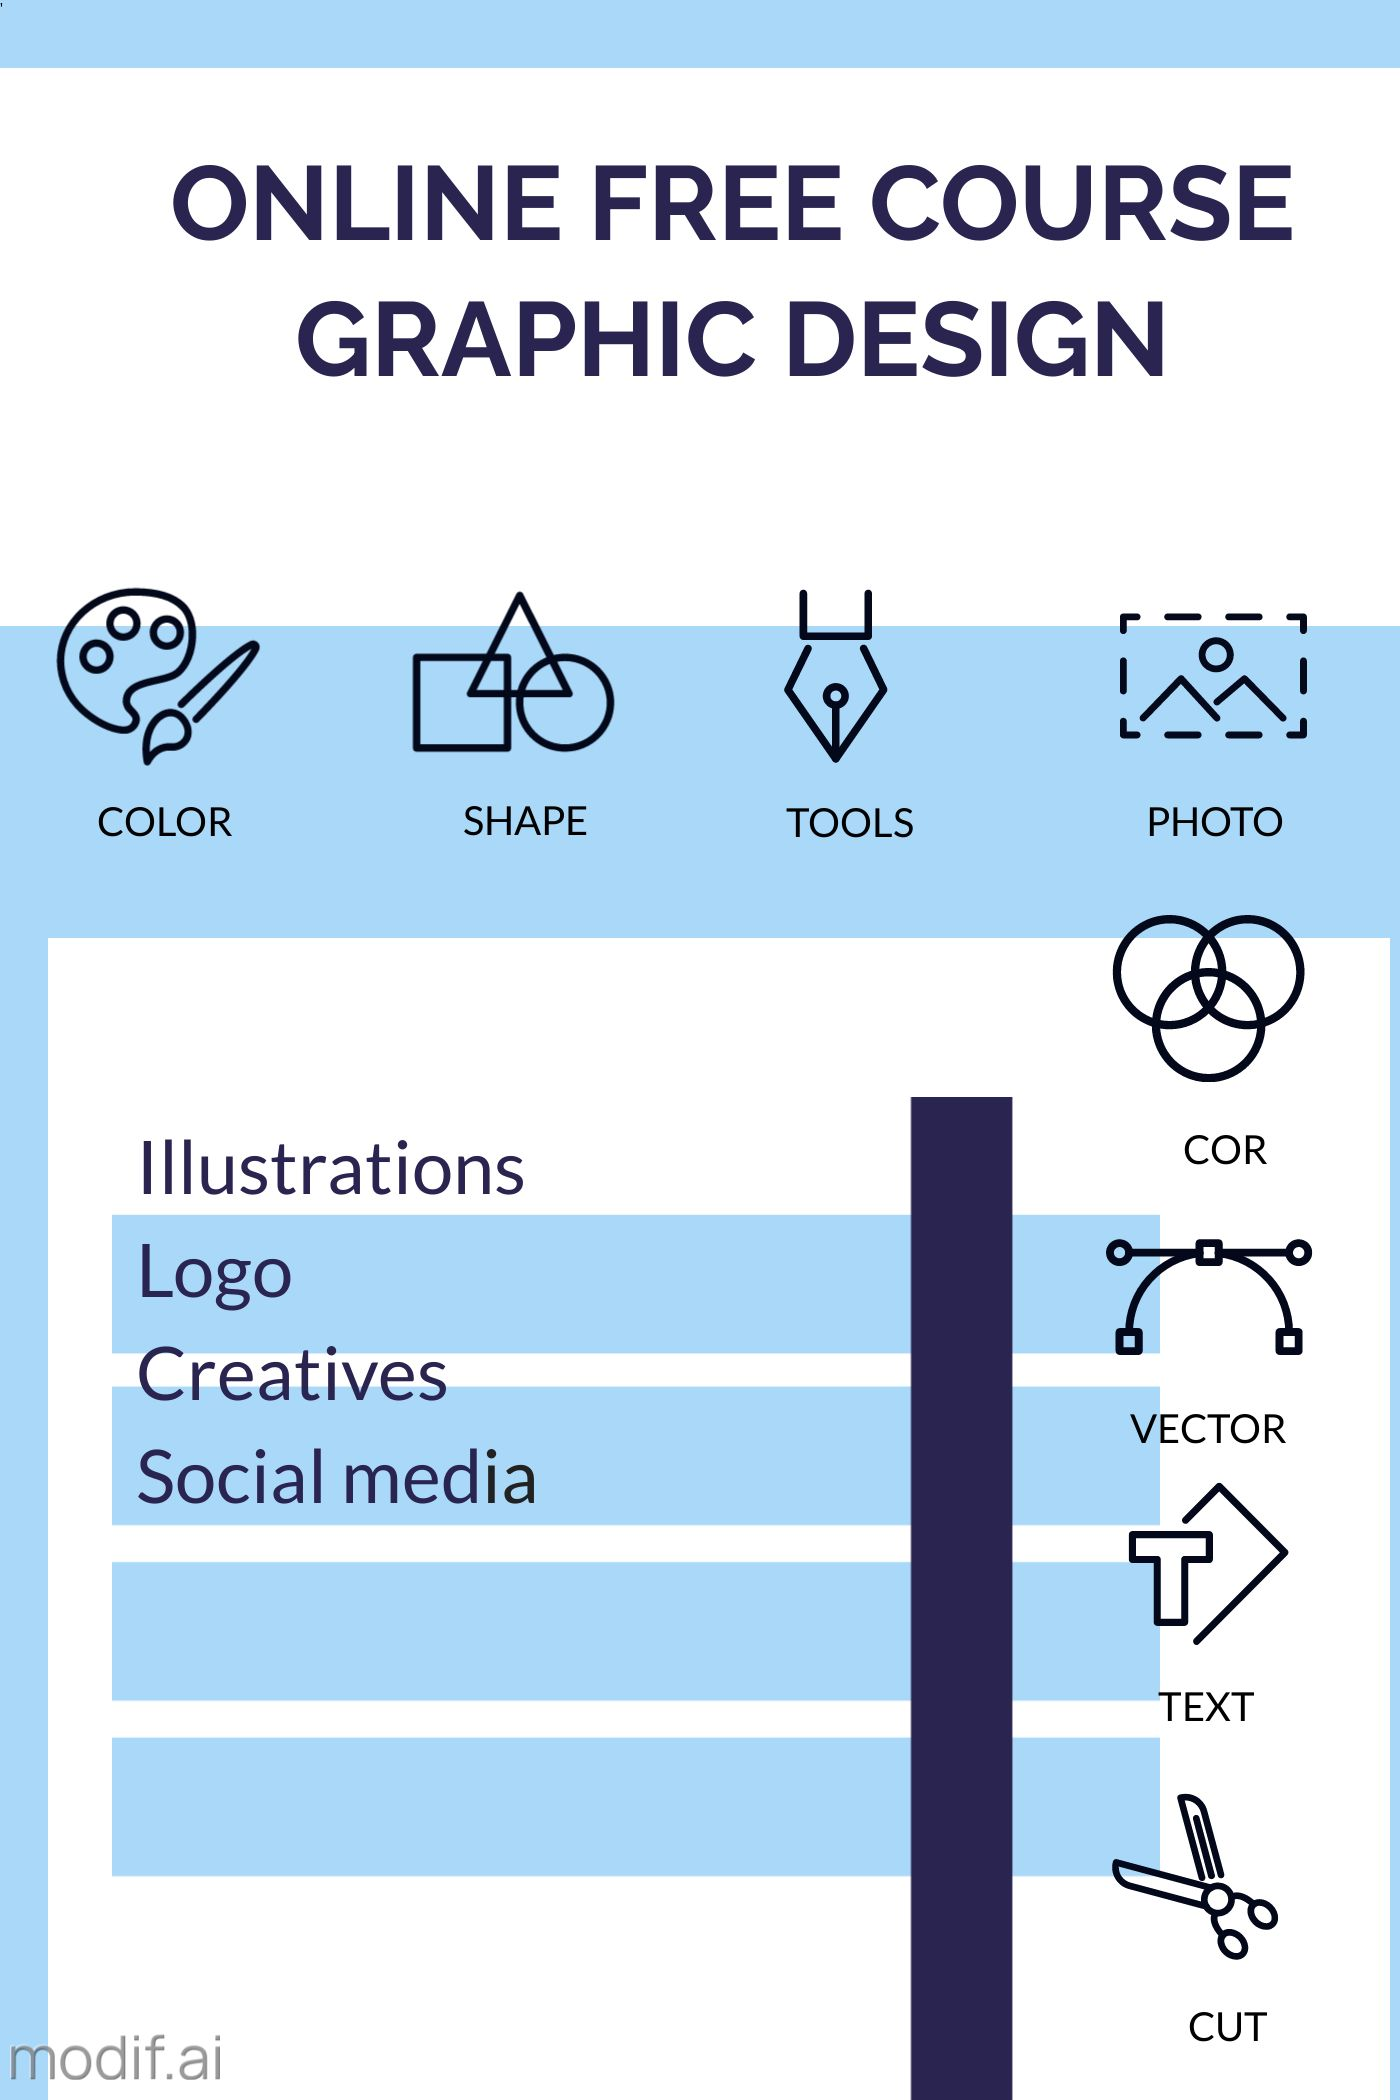 Online Graphic Design Course Template